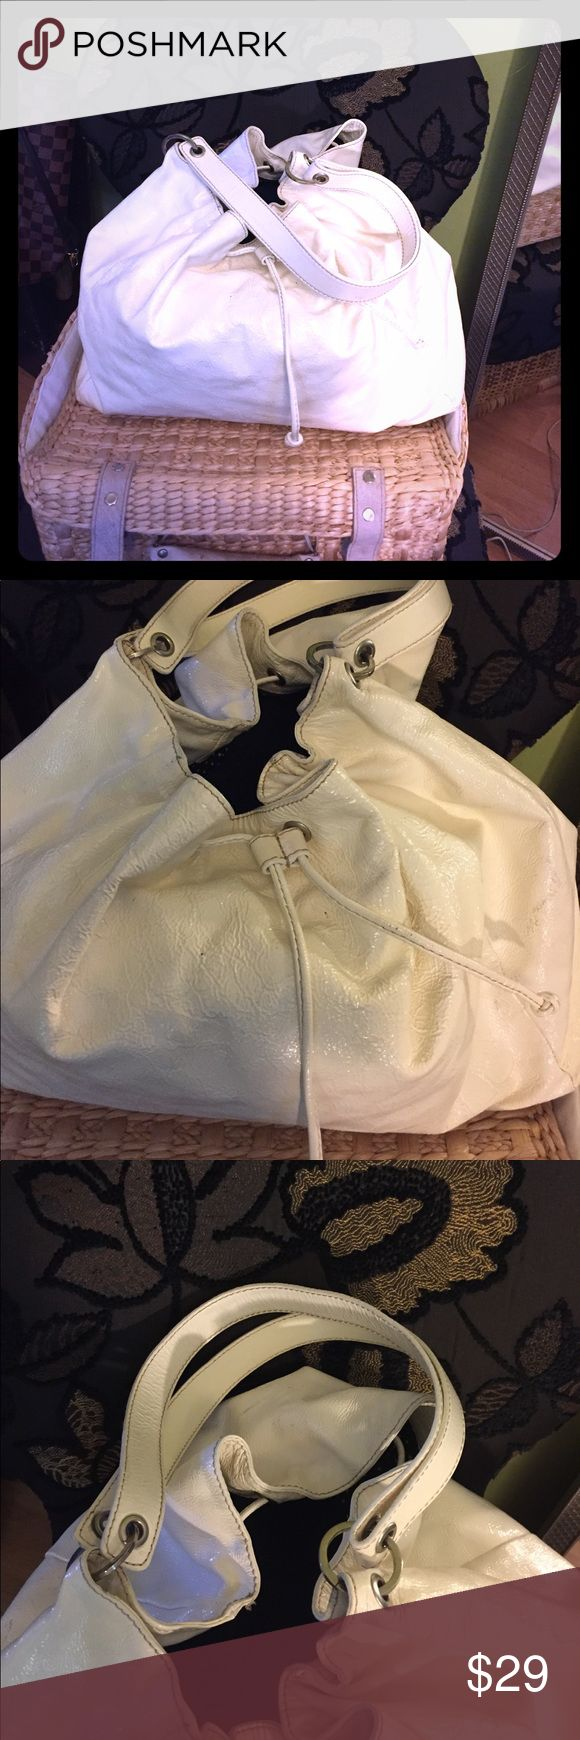 """KATE SPADE Large White Drawstring Purse Large white patent leather drawstring bag with double straps & polka dot lining. Bag is unstructured, but roughly measures 18"""" across & 12"""" deep.  Bag has faint marks on back of bag, as pictured, but are faint & not noticeable when drawstring is cinched, & is priced accordingly. Retails at $395 kate spade Bags"""